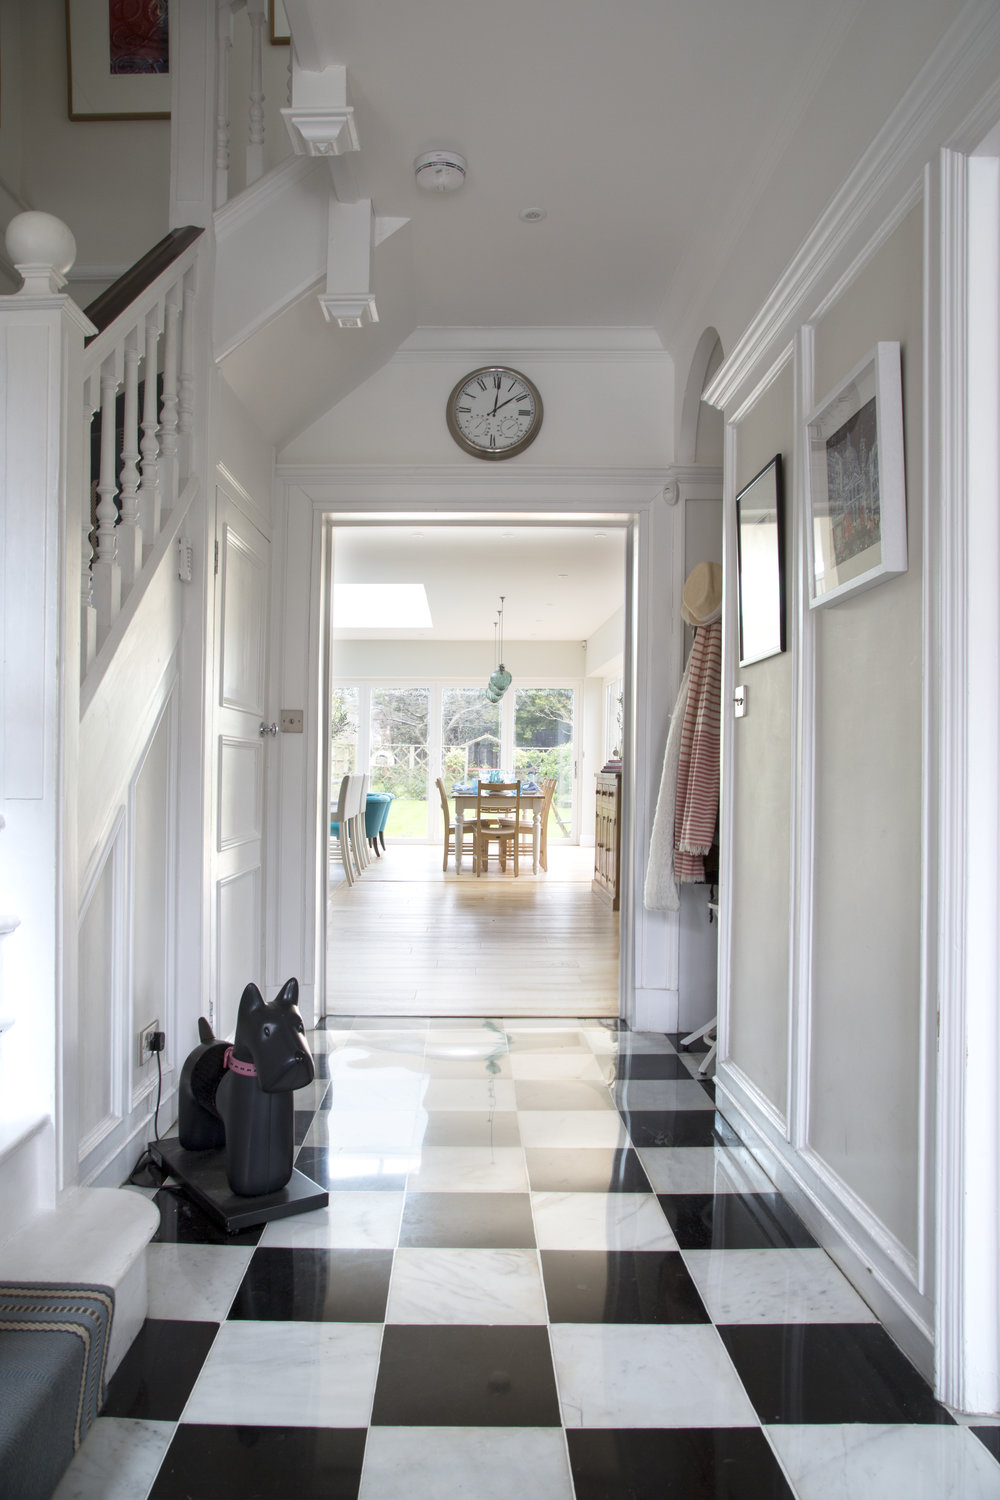 Black and white tiling leads into a sunny kitchen extension in Sevenoaks Kent - Interior Design by Phoebe Oldrey of Smartstyle Interiors